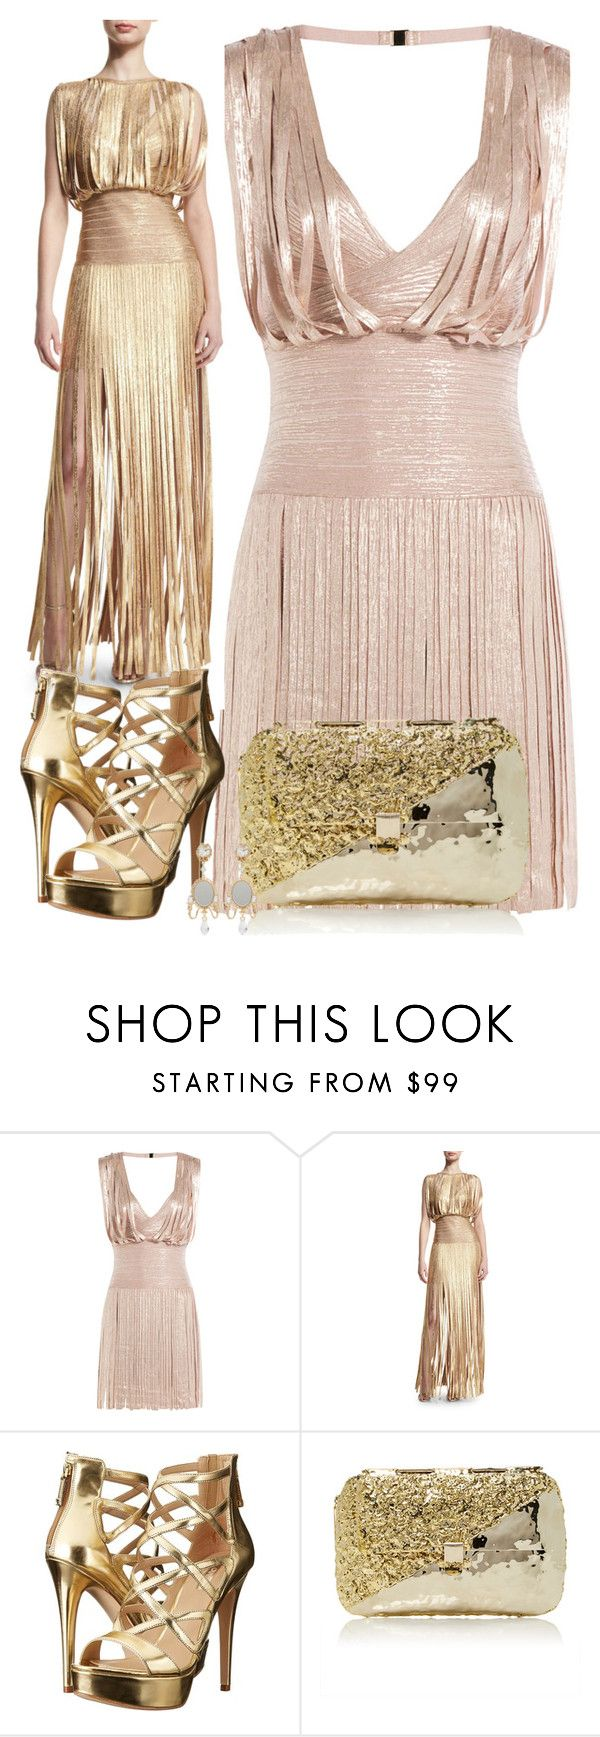 """PLEATED DRESS"" by ann-kelley14 on Polyvore featuring Hervé Léger, GUESS, Anndra Neen and Dolce&Gabbana"